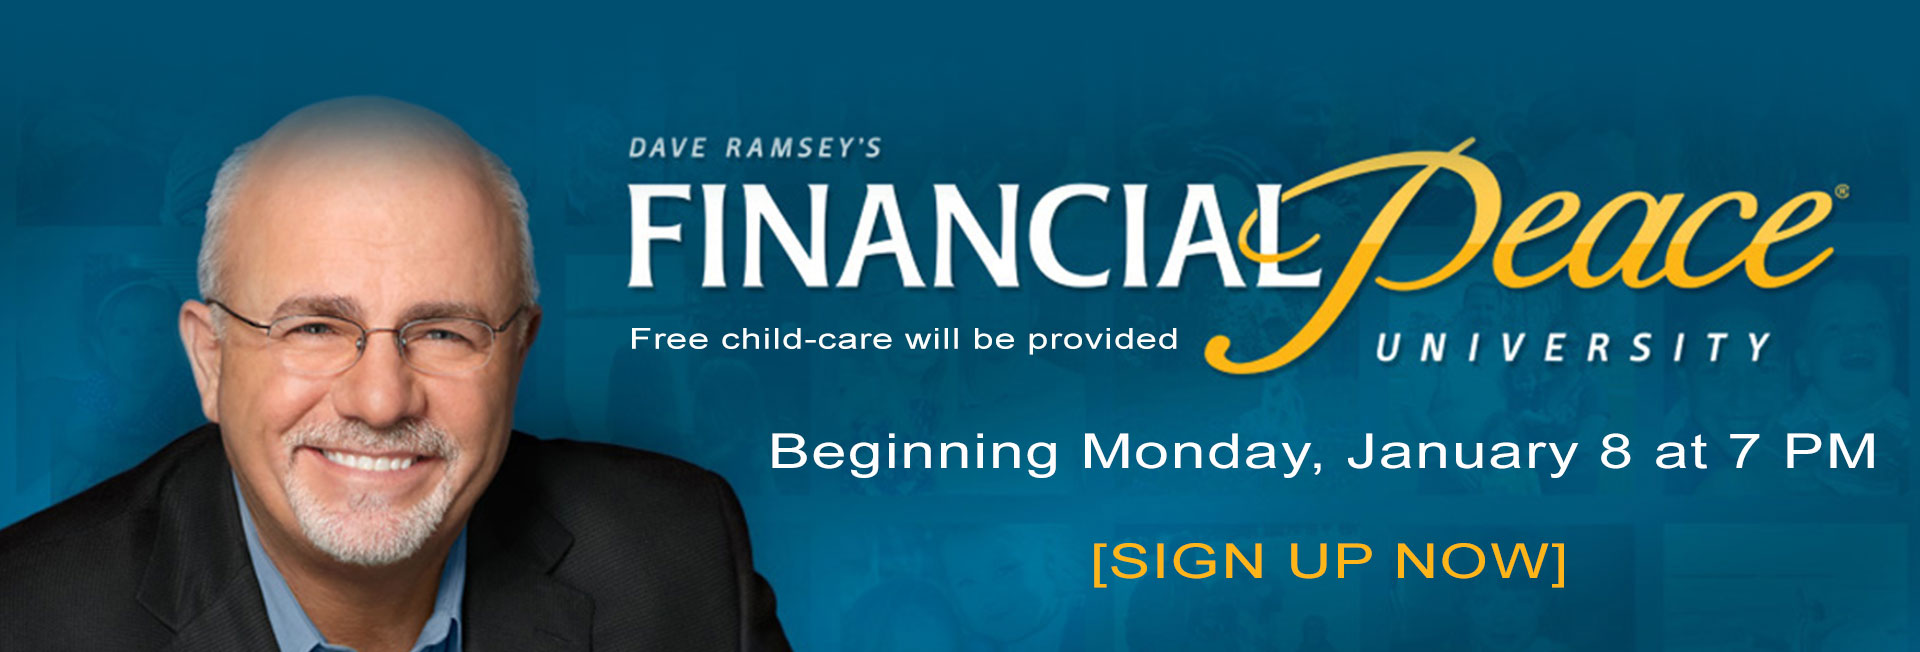 Financial Peace University classes start Monday, January 8 at 7 PM [sign up]